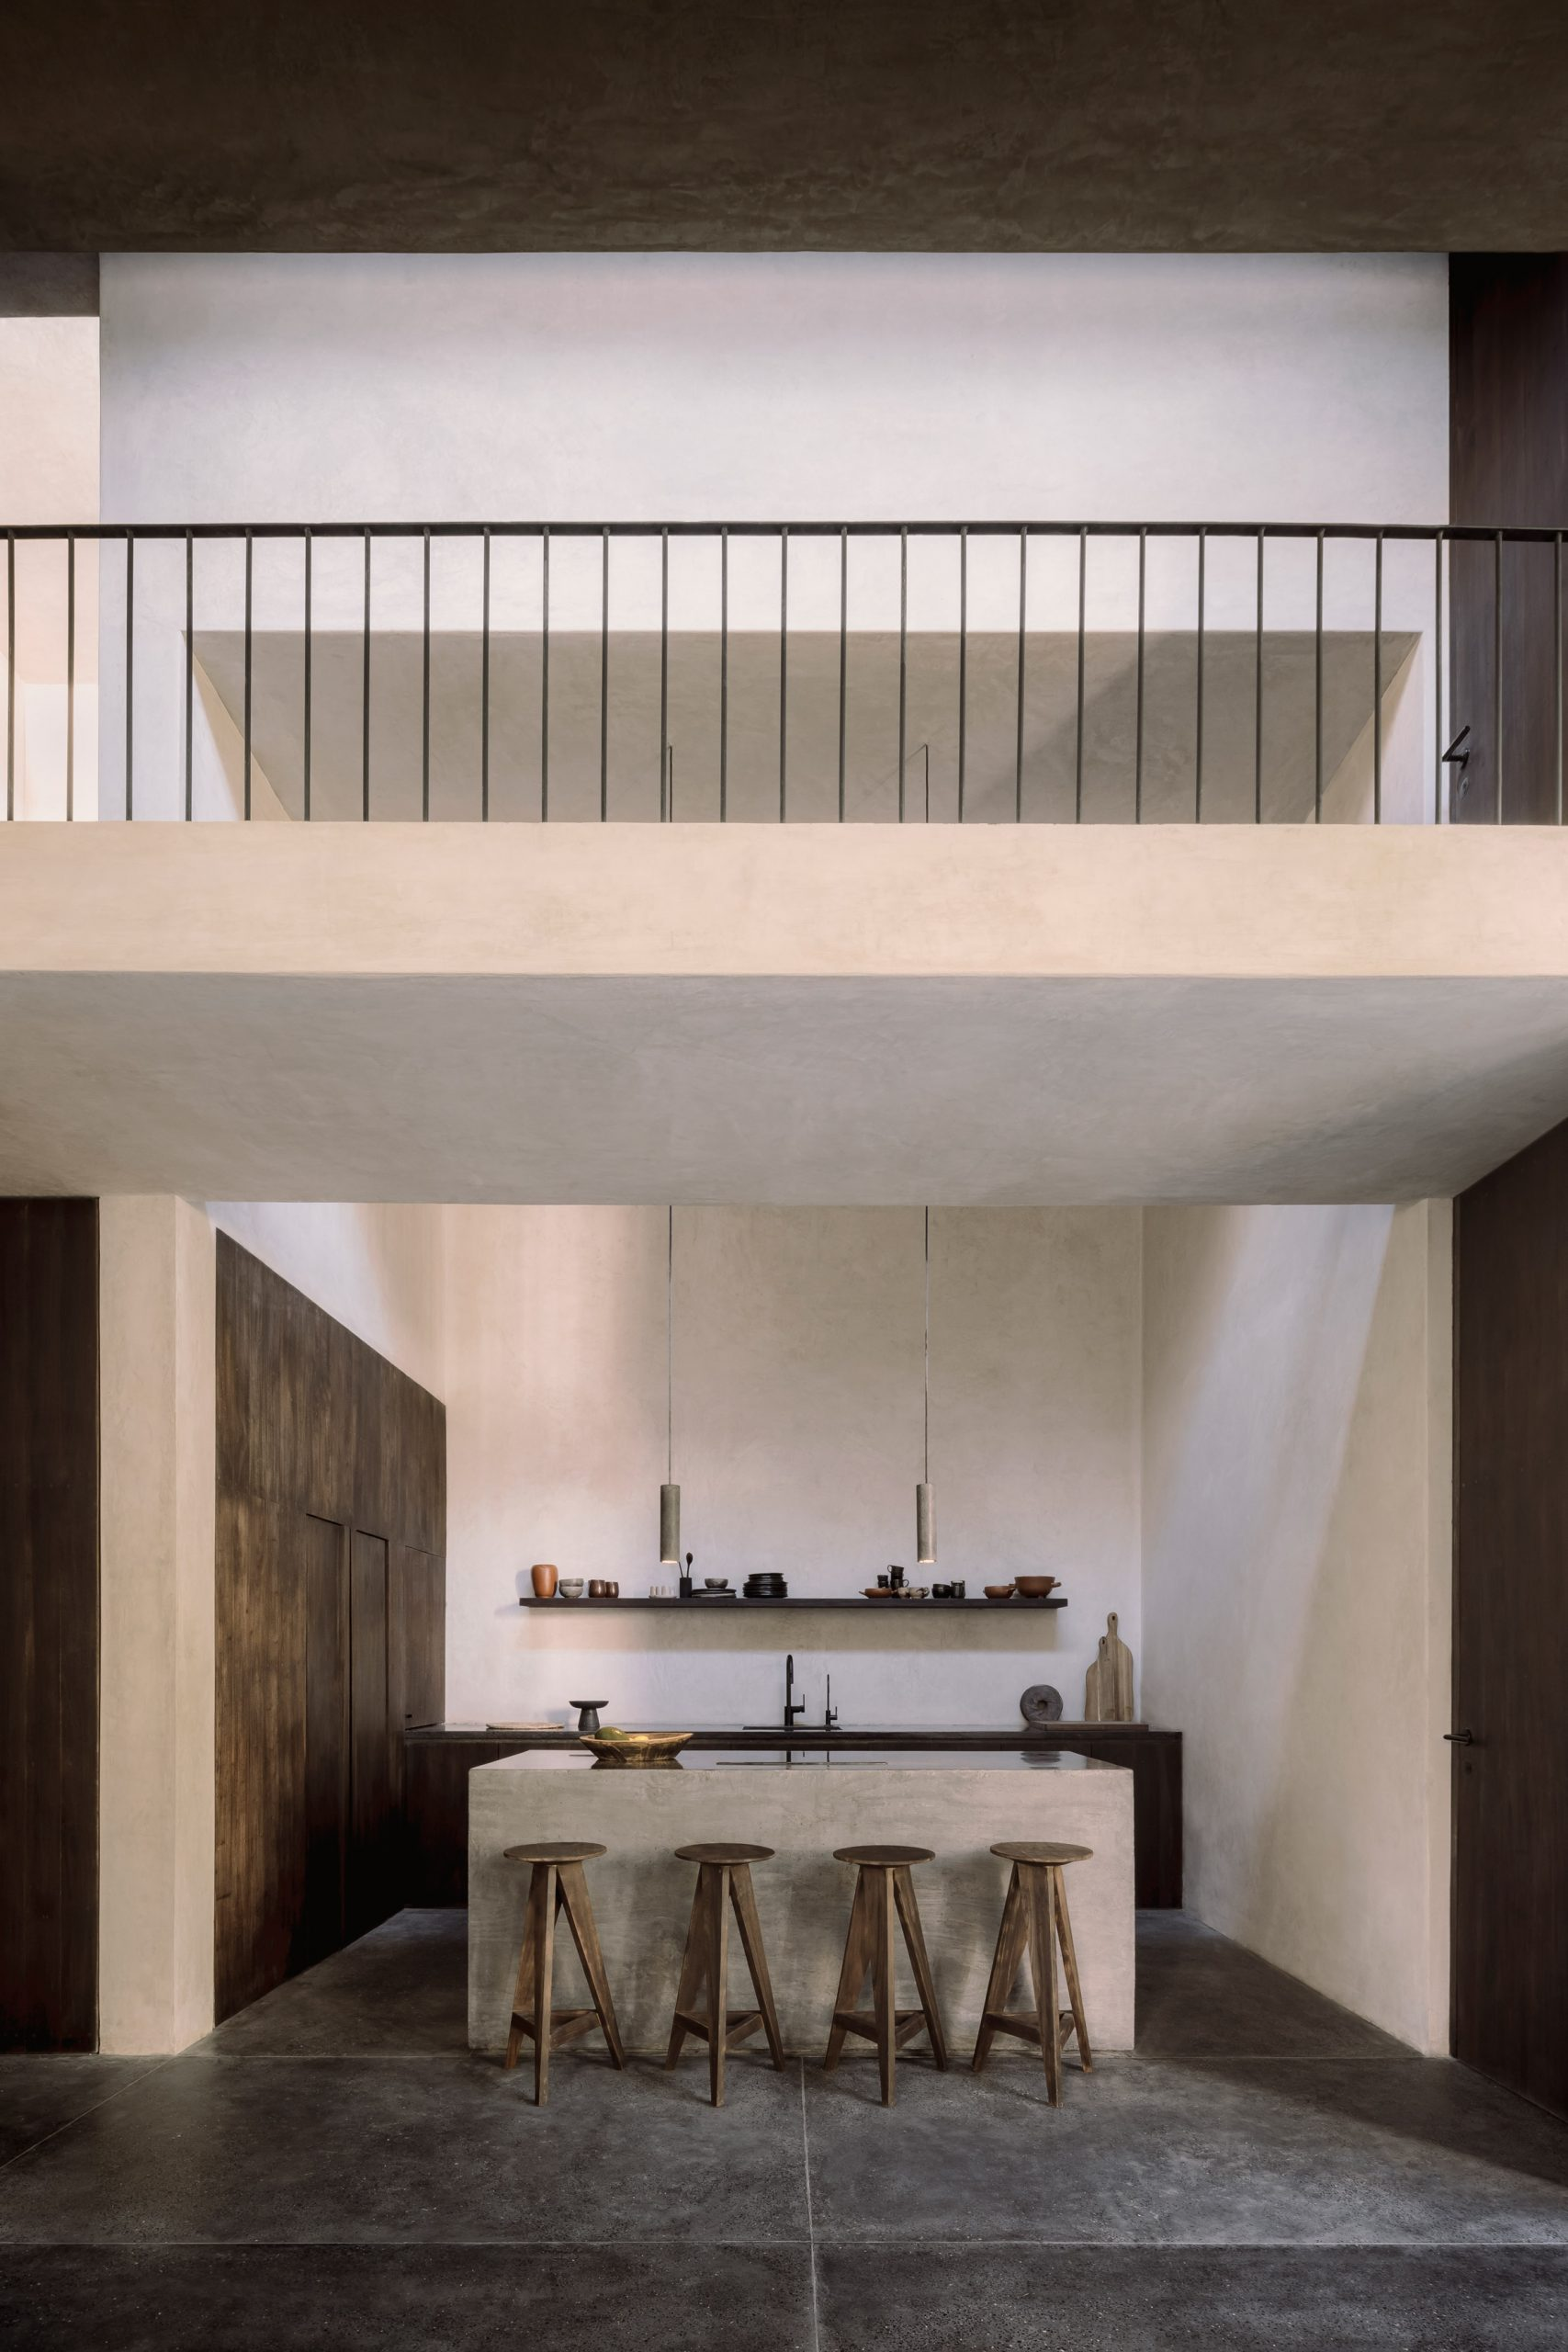 Kitchen and bridge of holiday home in Tulum